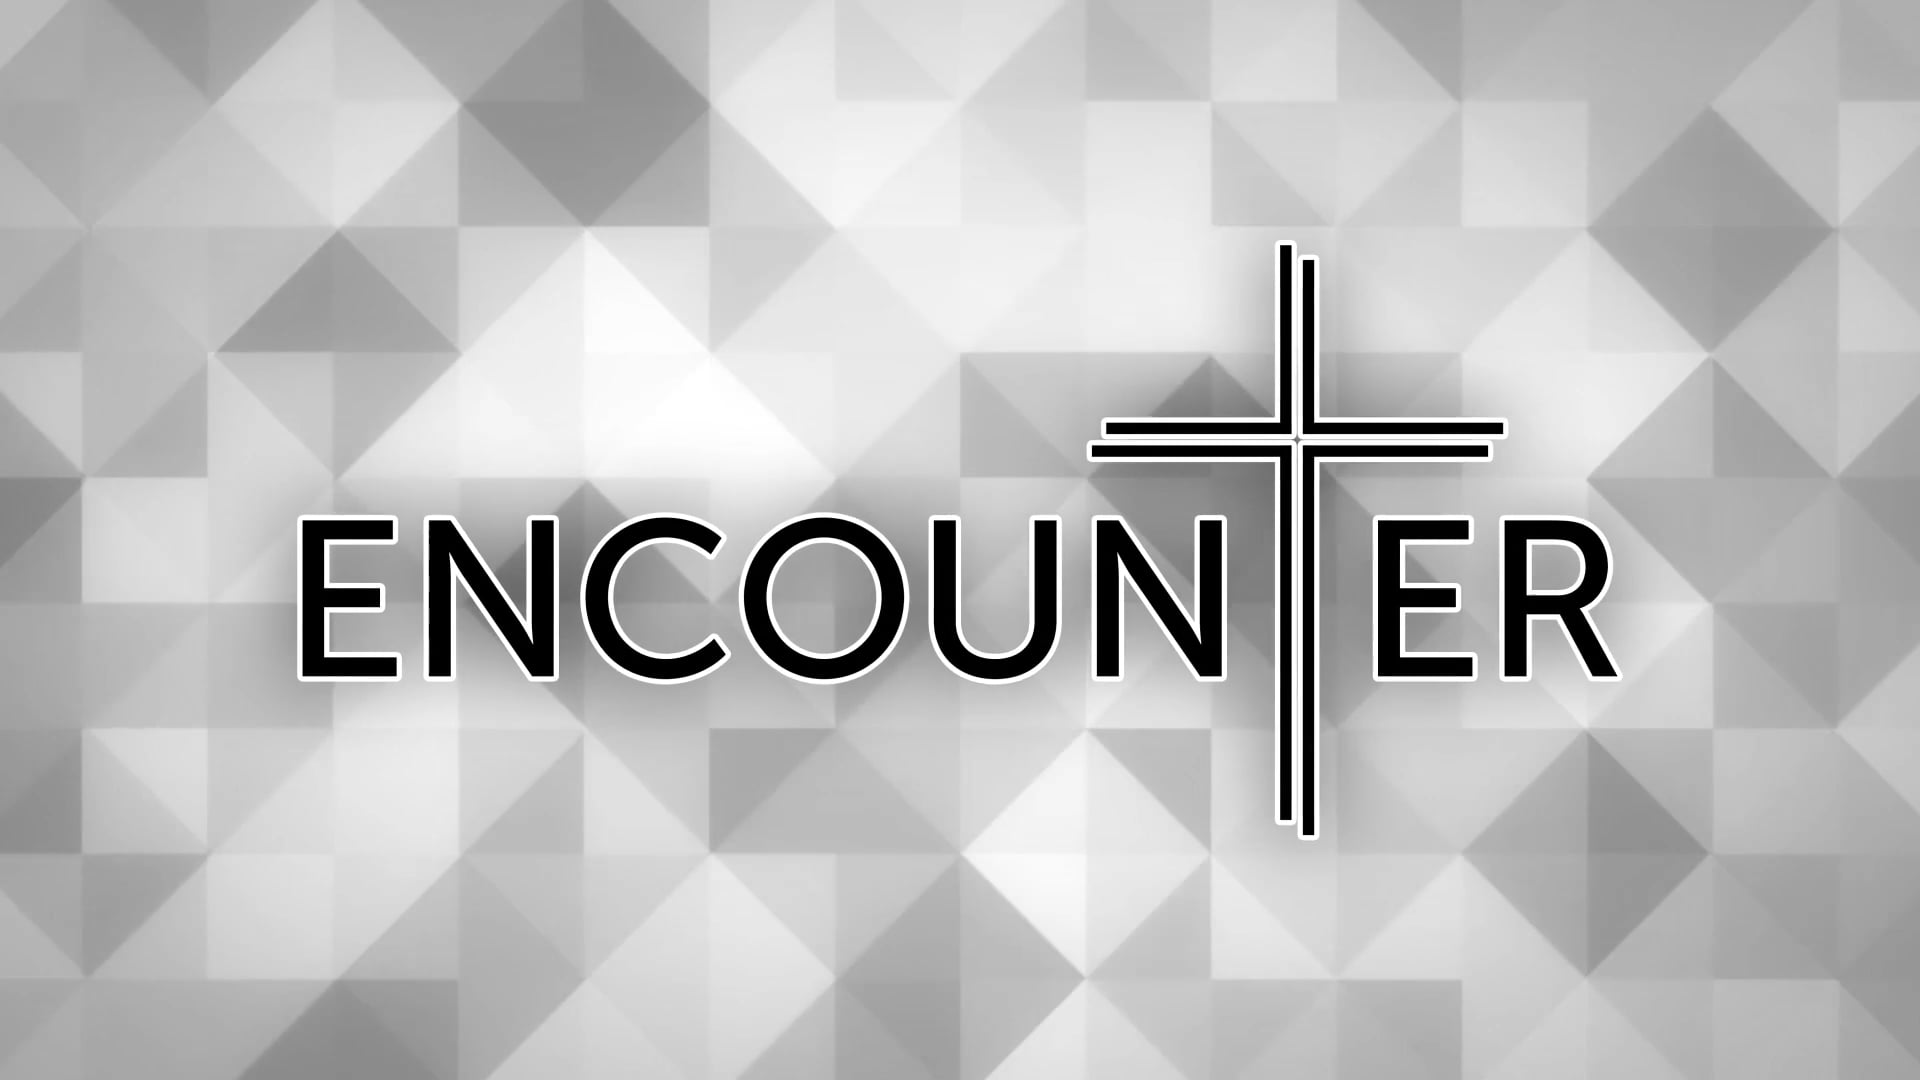 Encounter - The Year of St. Joseph, Part 2